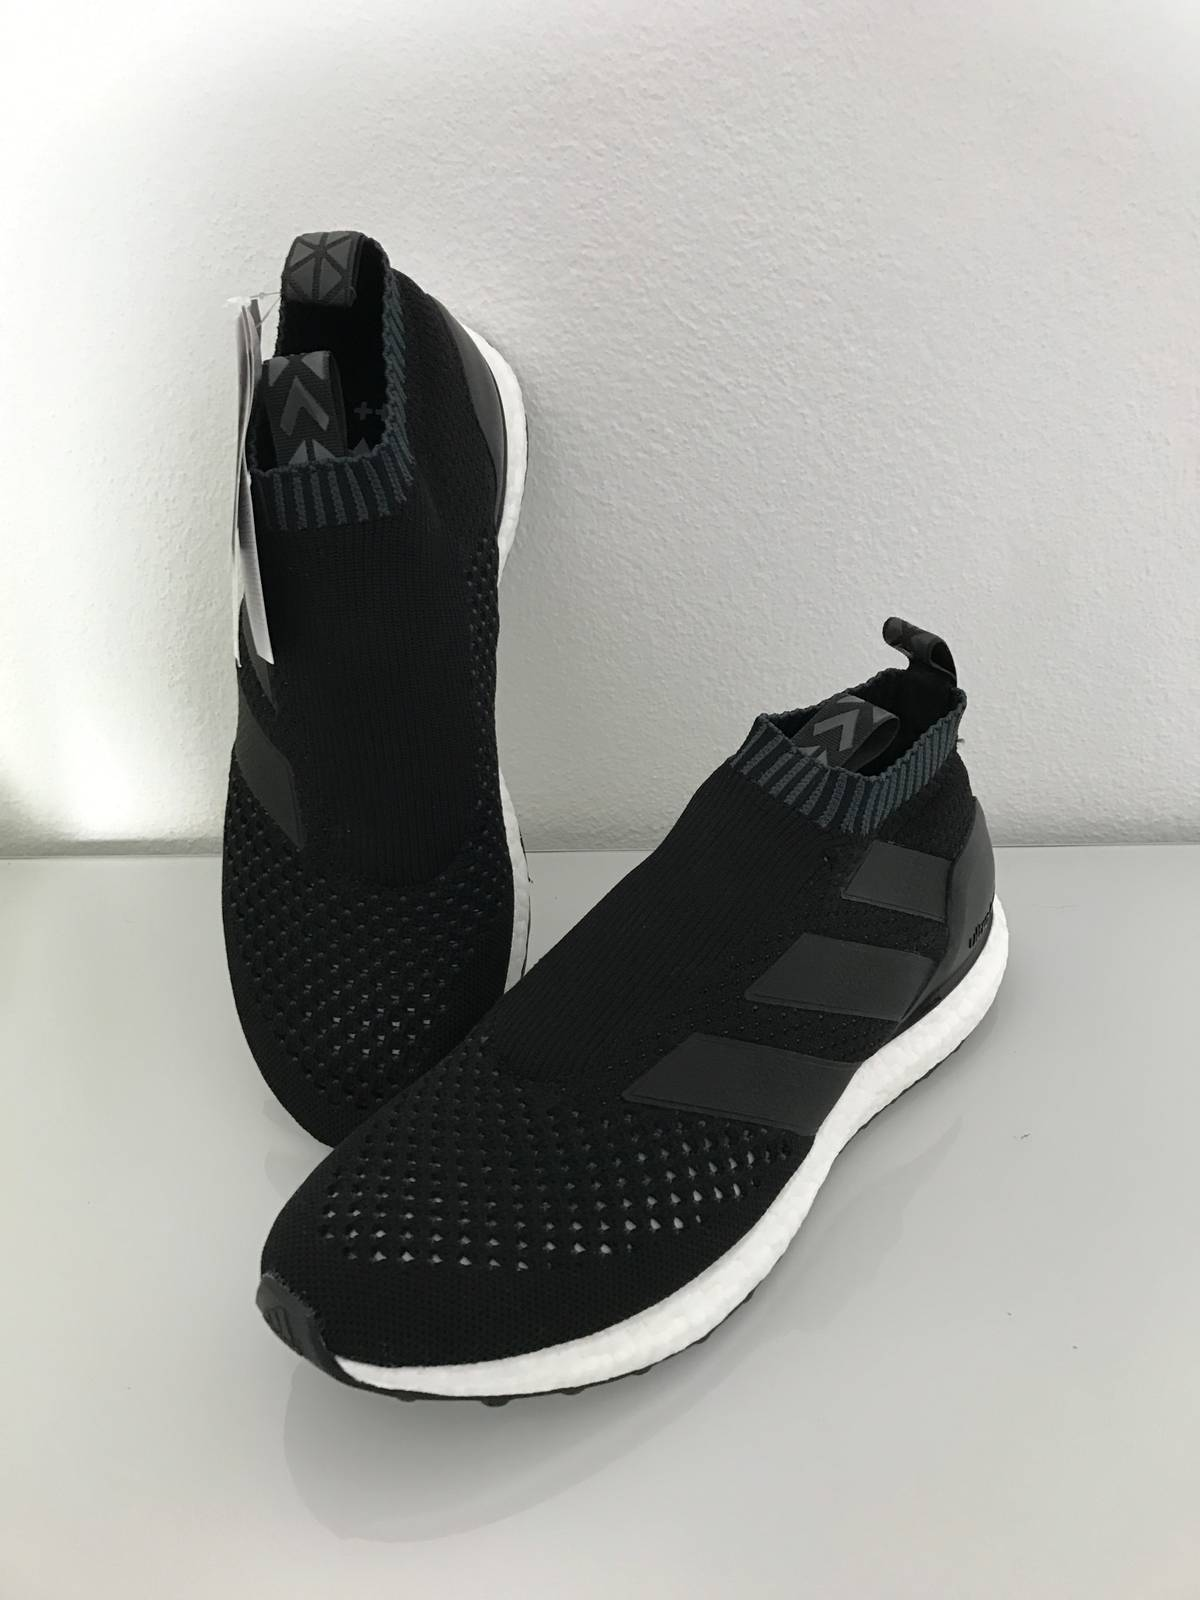 ADIDAS ACE 16 PURE CONTROL ULTRA BOOST (BLACK/WHITE